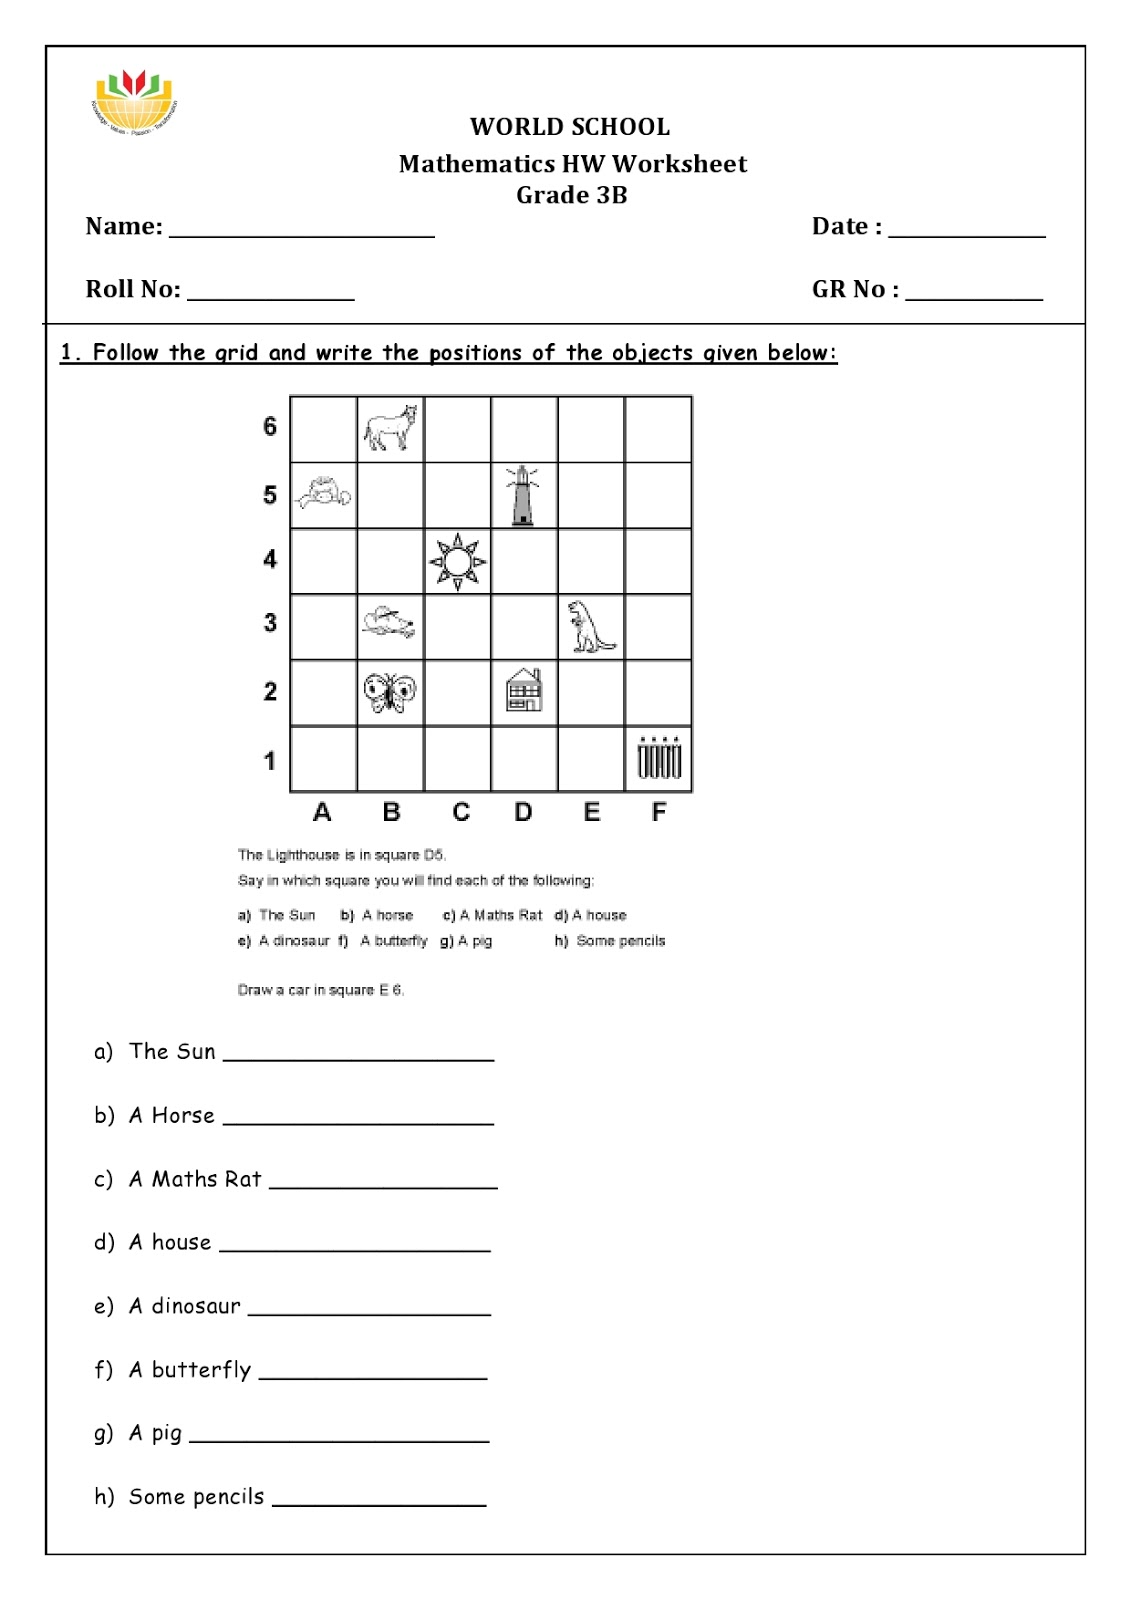 Birla World School Oman Homework For Grade 3 As On 20 03